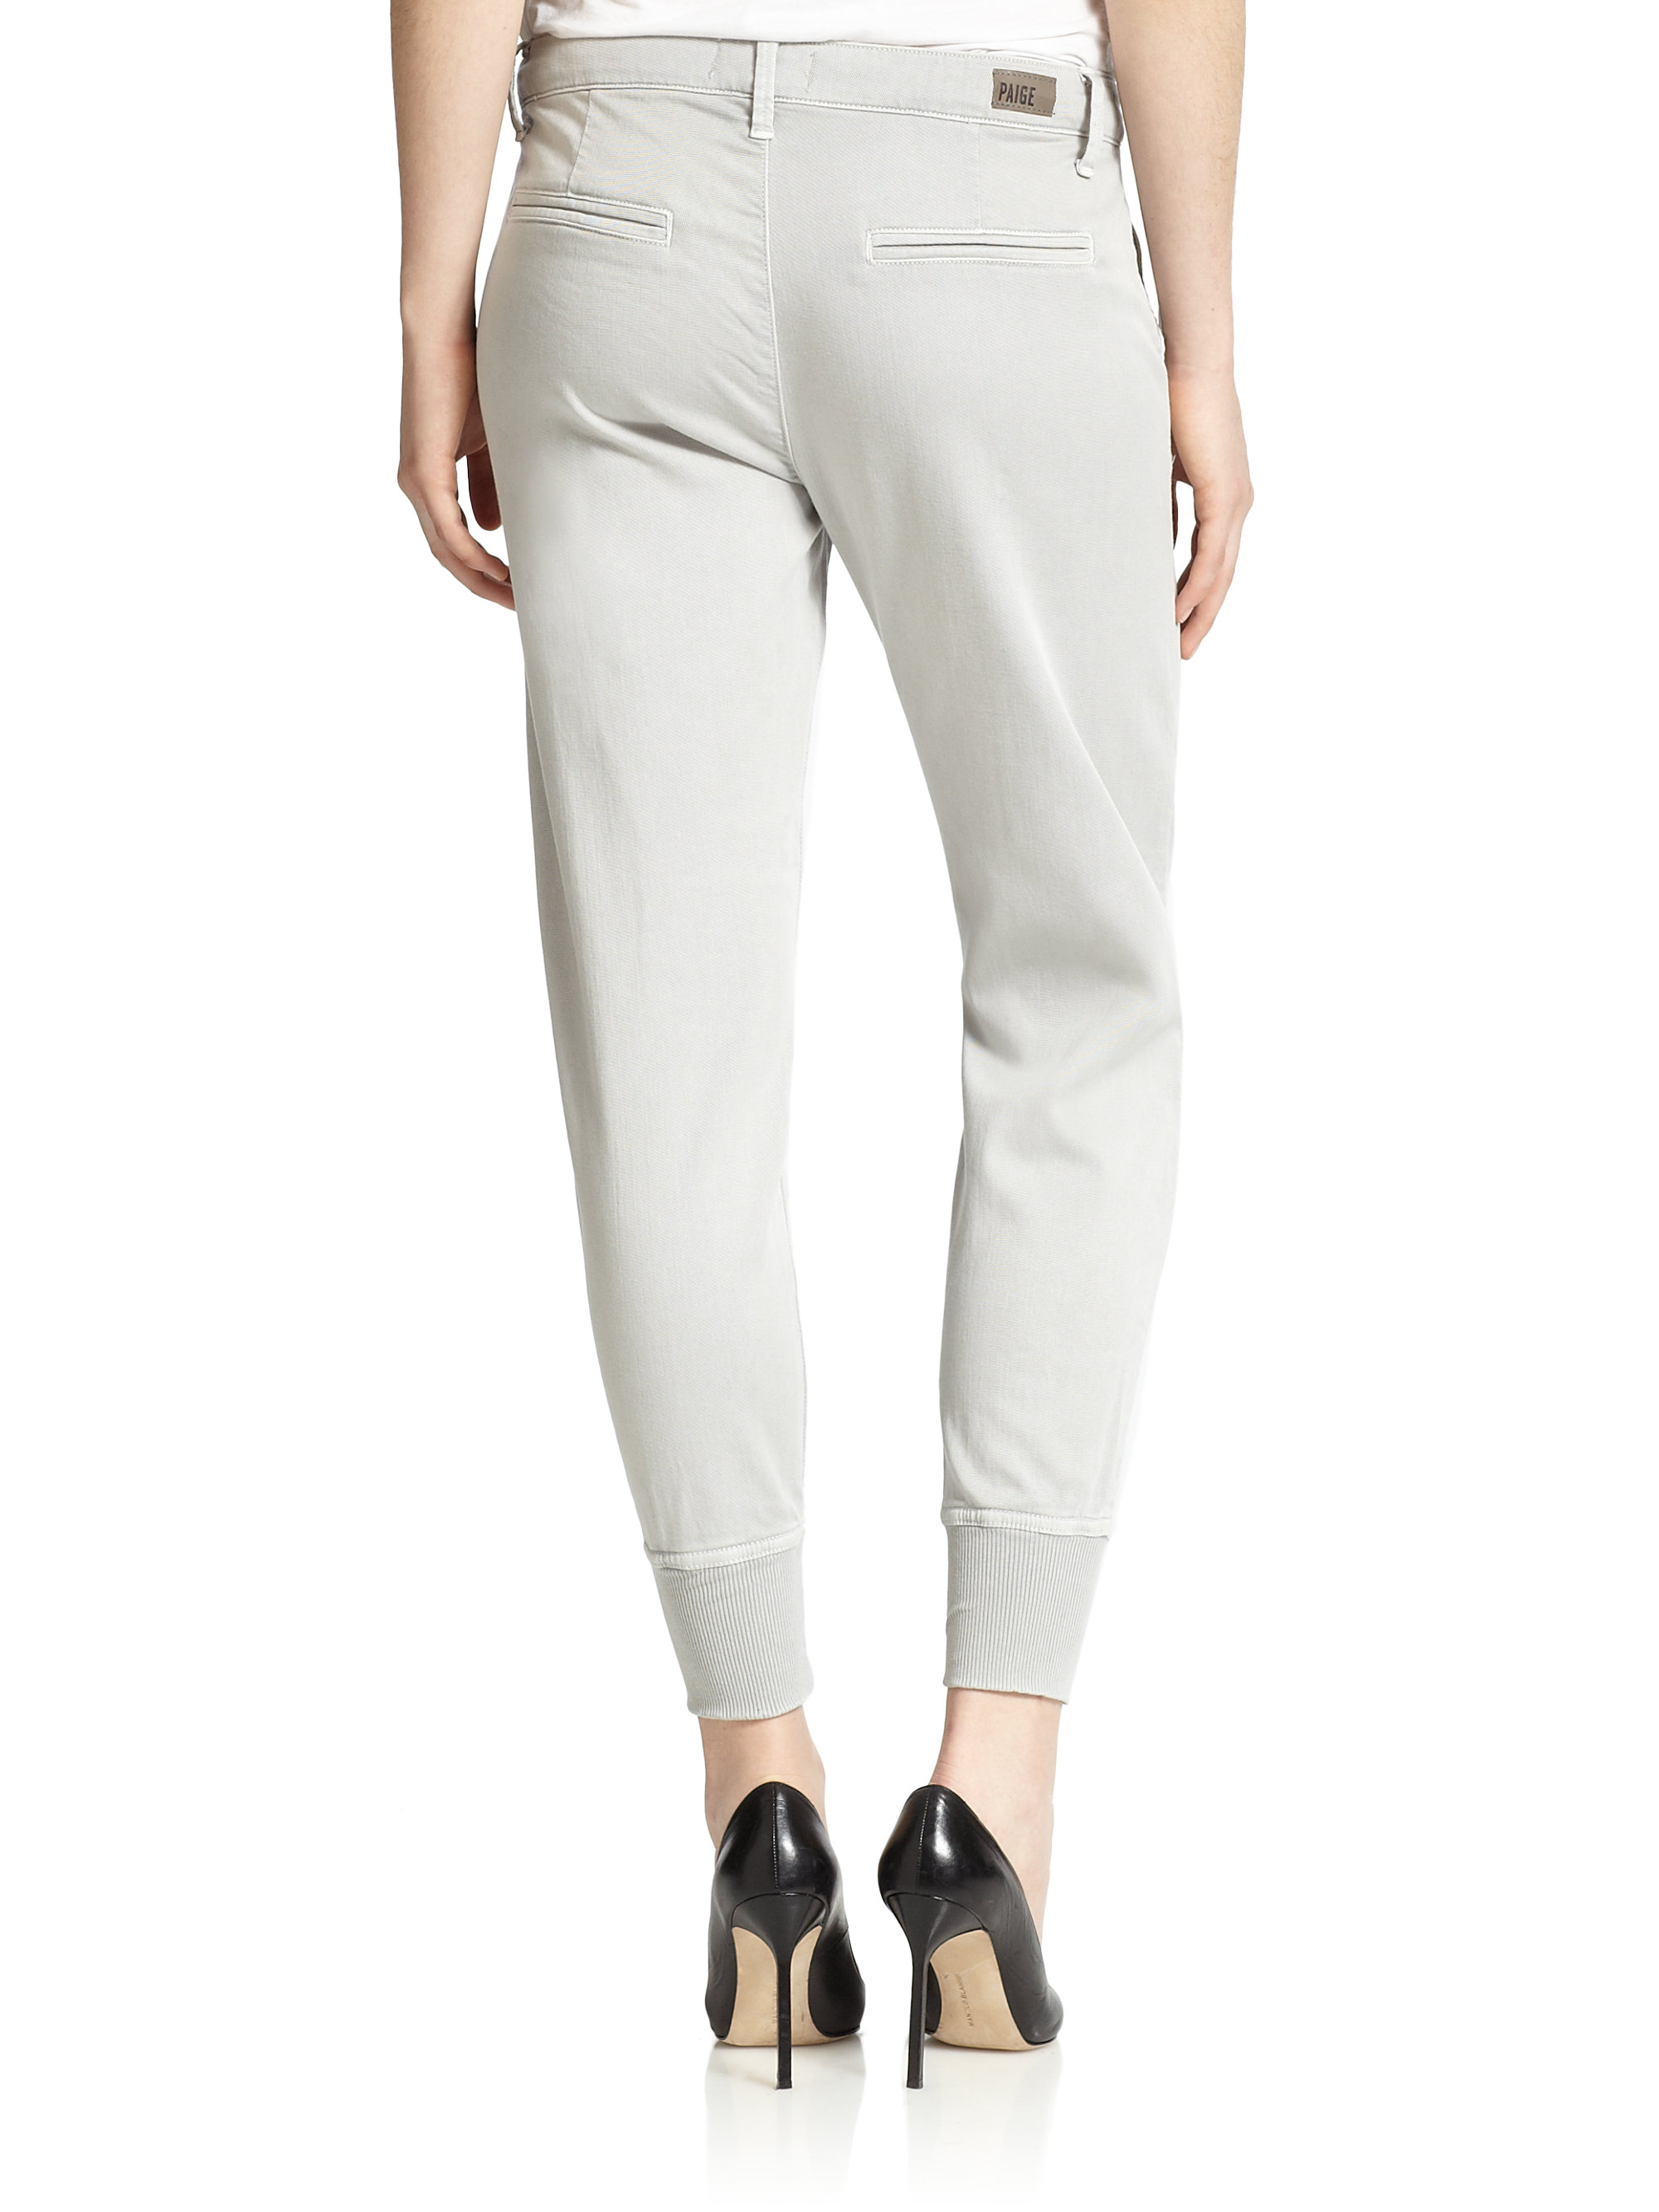 Cool Details About New Rusty Women39s Hook Out Jogger Pant Cotton Pu